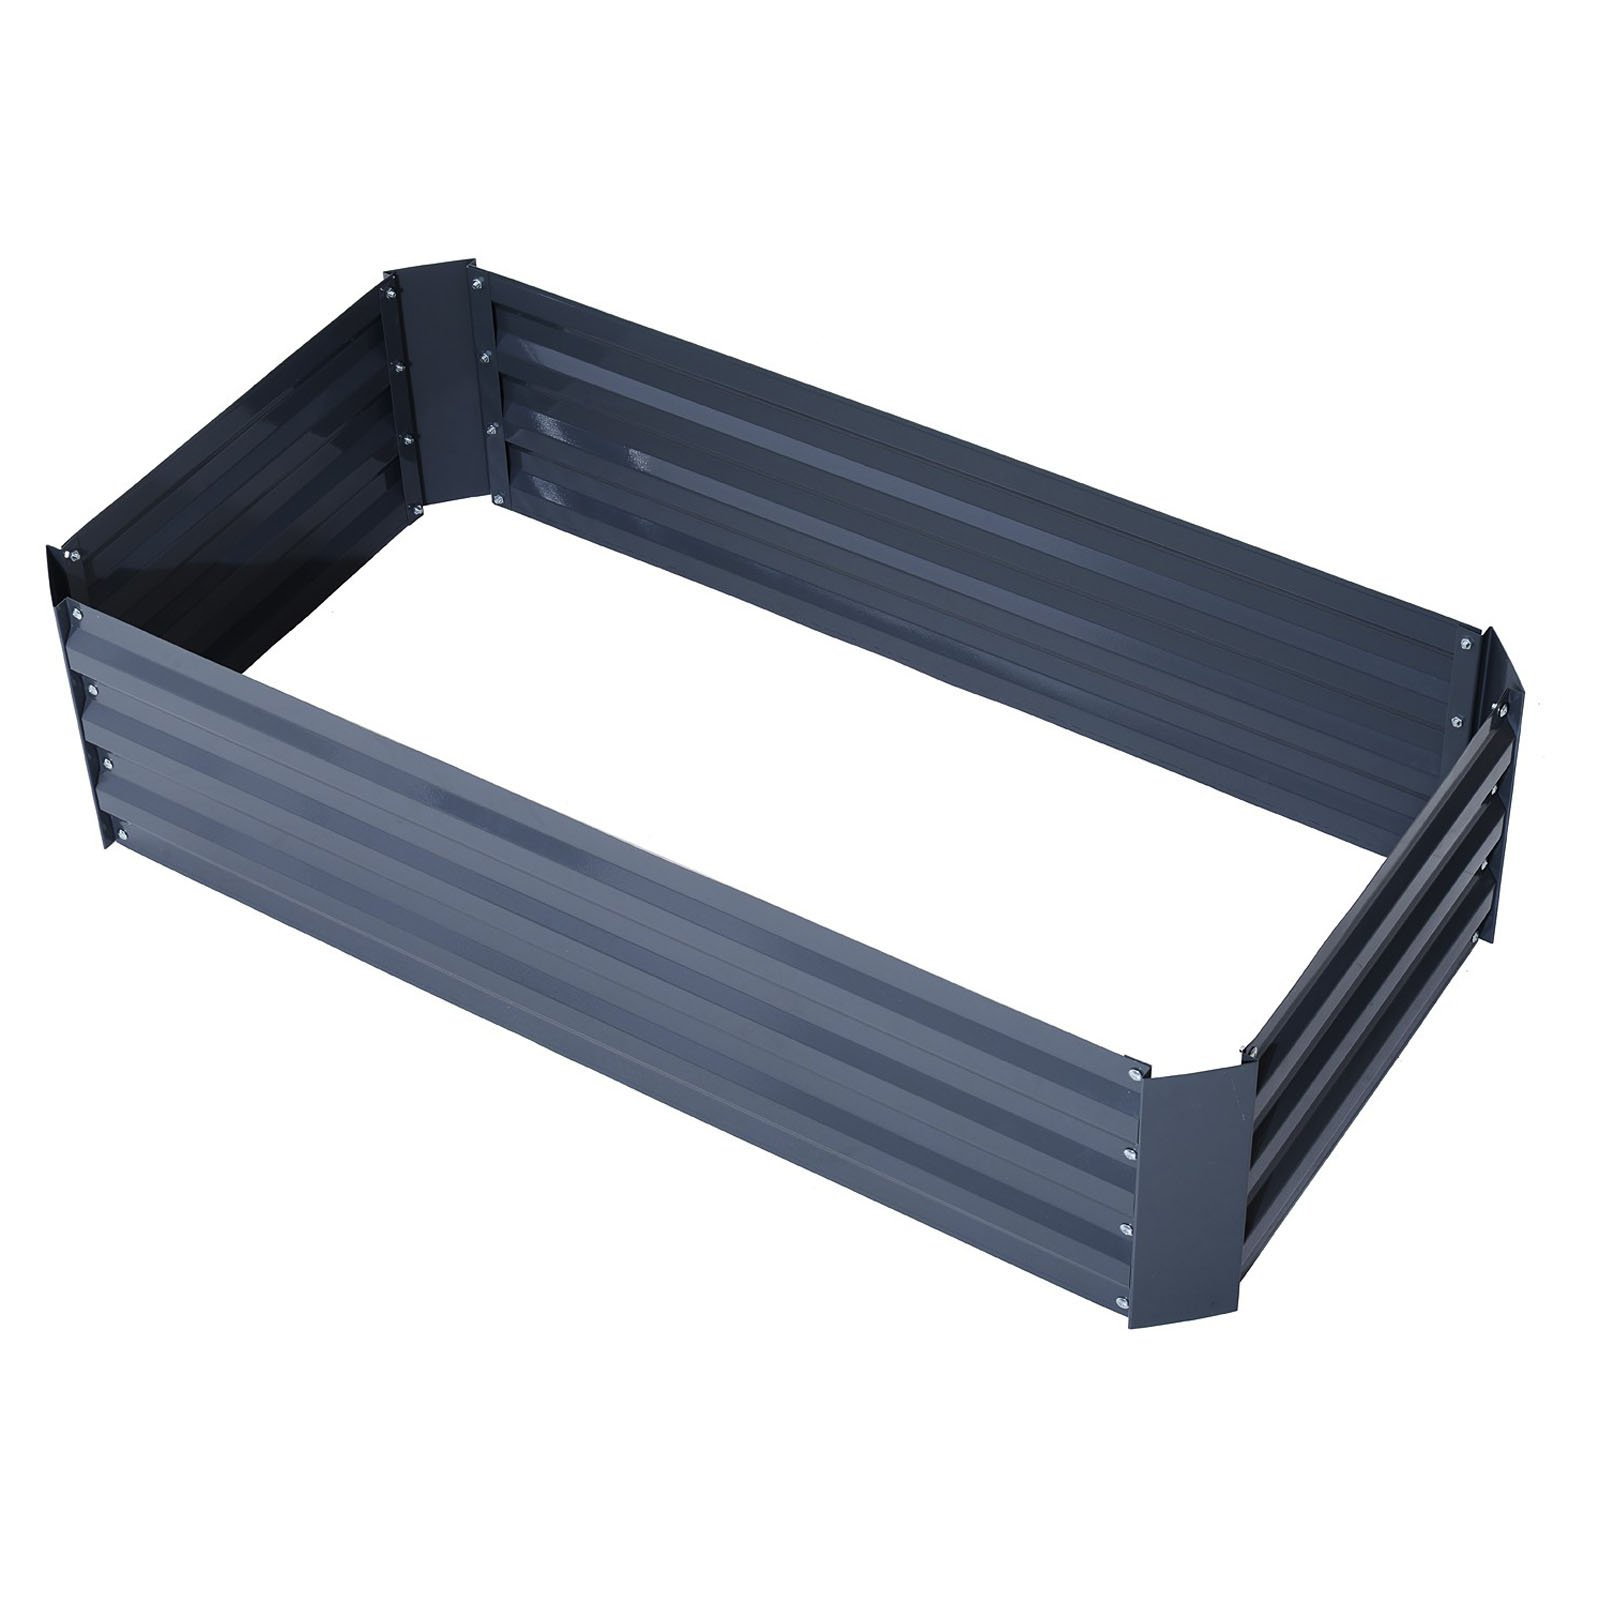 Outsunny 49 x 26 in. Galvanized Metal Raised Garden Bed